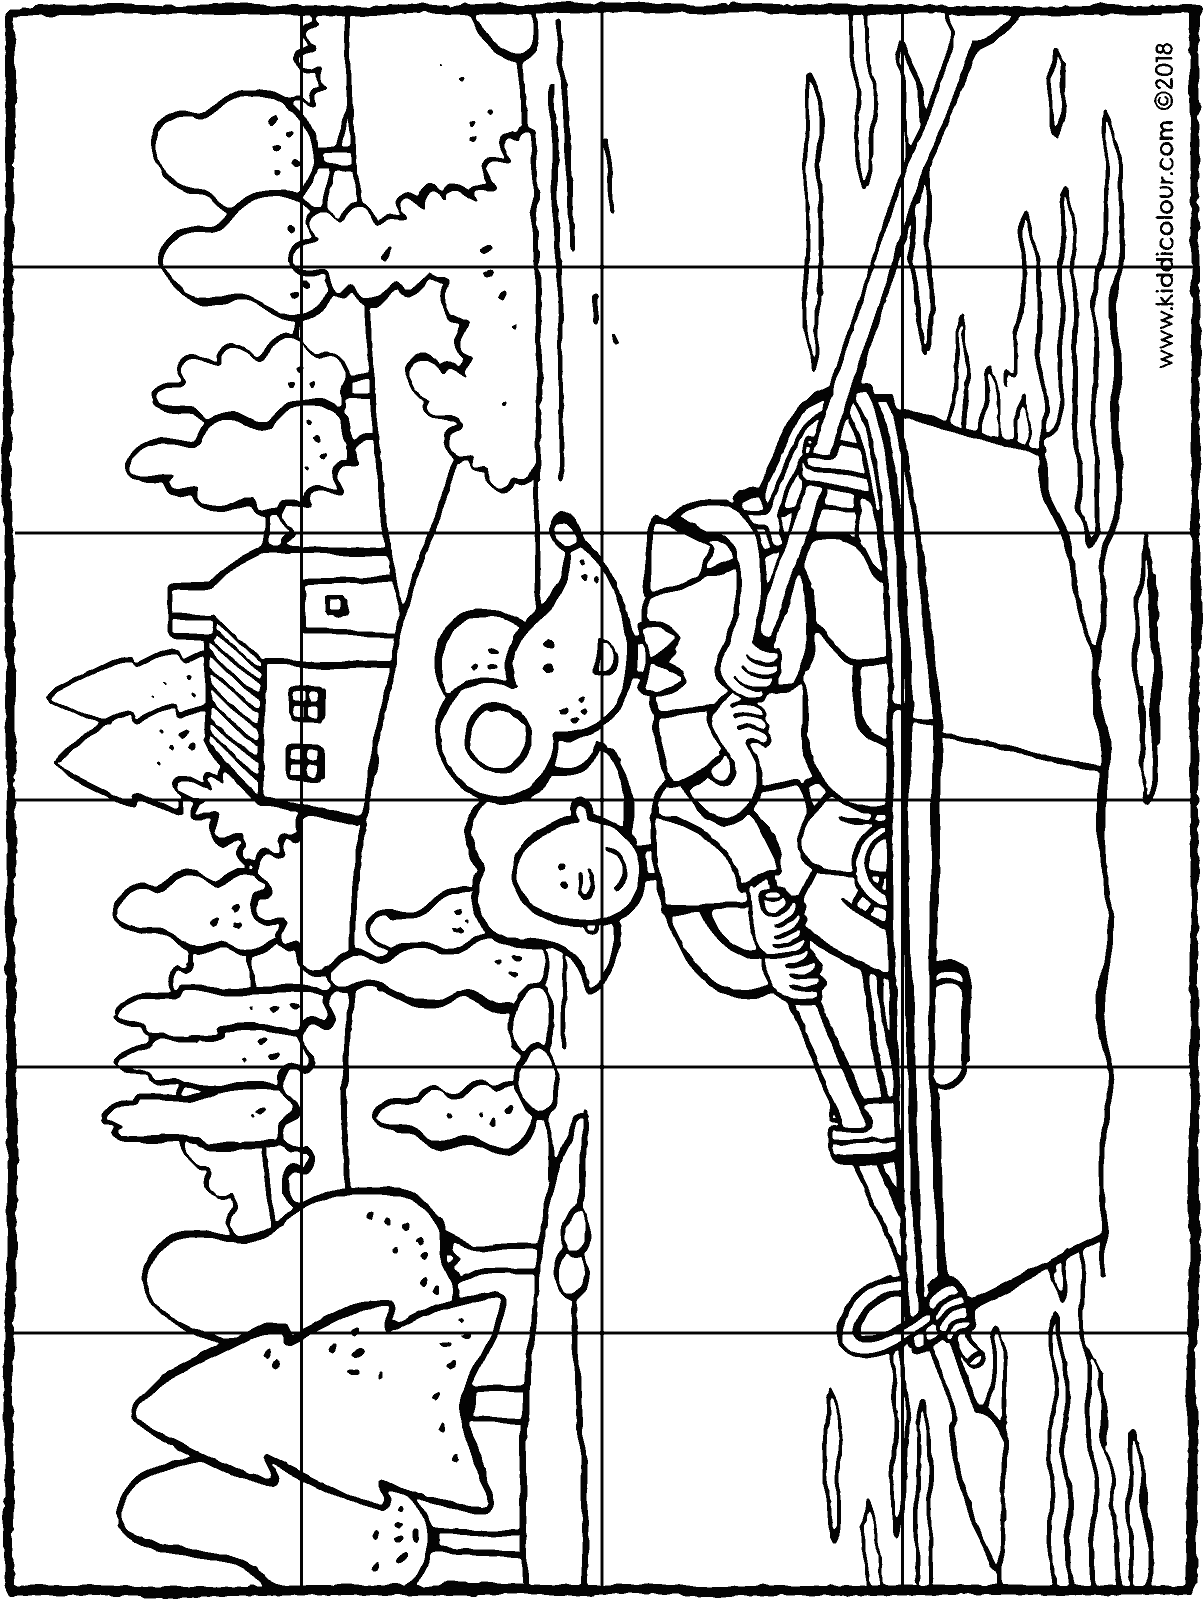 Emma and Thomas row in a rowing boat 24-piece puzzle colouring page drawing picture 01H